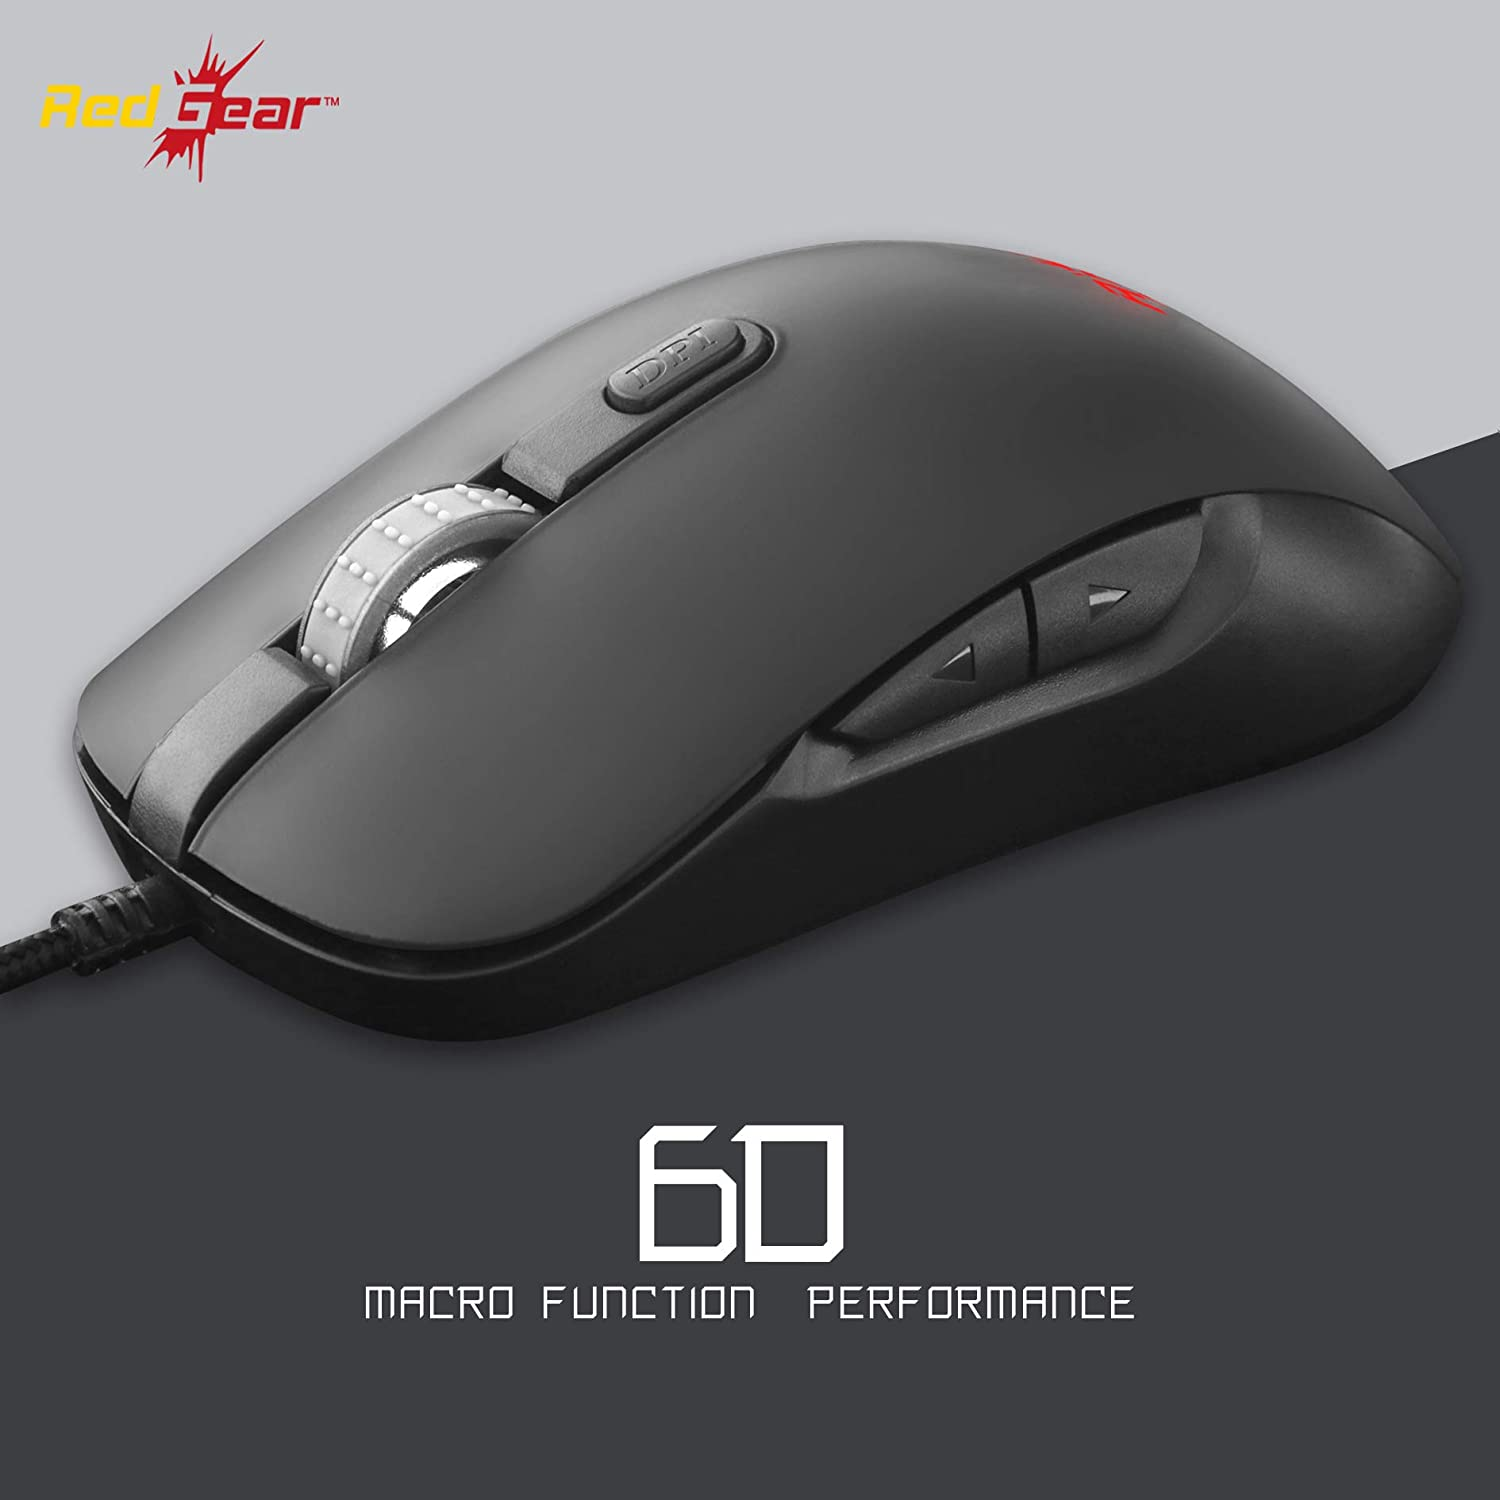 Redgear X12 Pro RGB Gaming Mouse with Avago Sensor